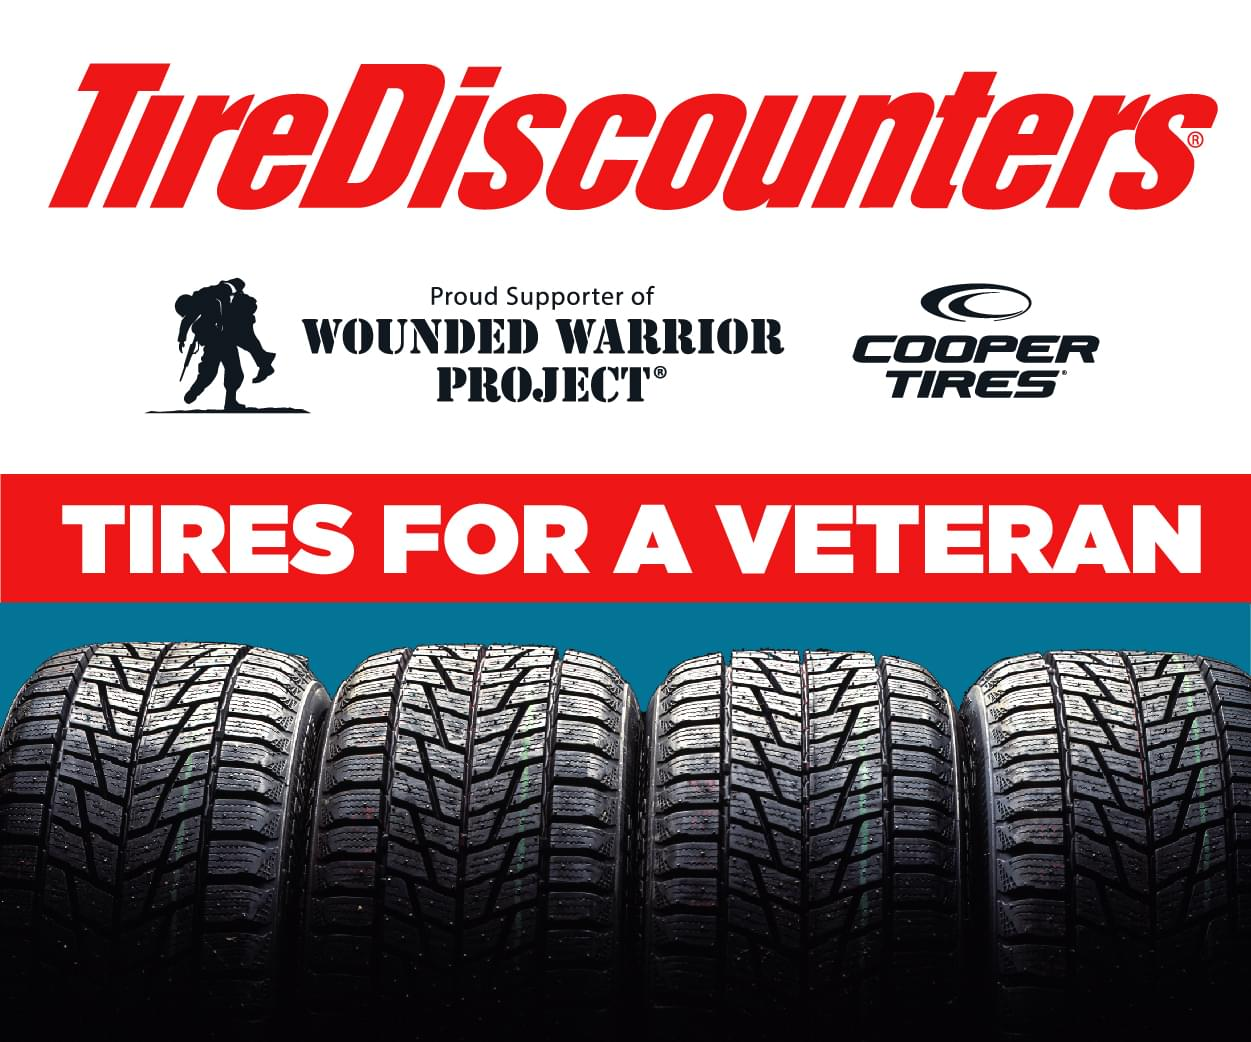 Nominate A Local Veteran to Win from Tire Discounters!